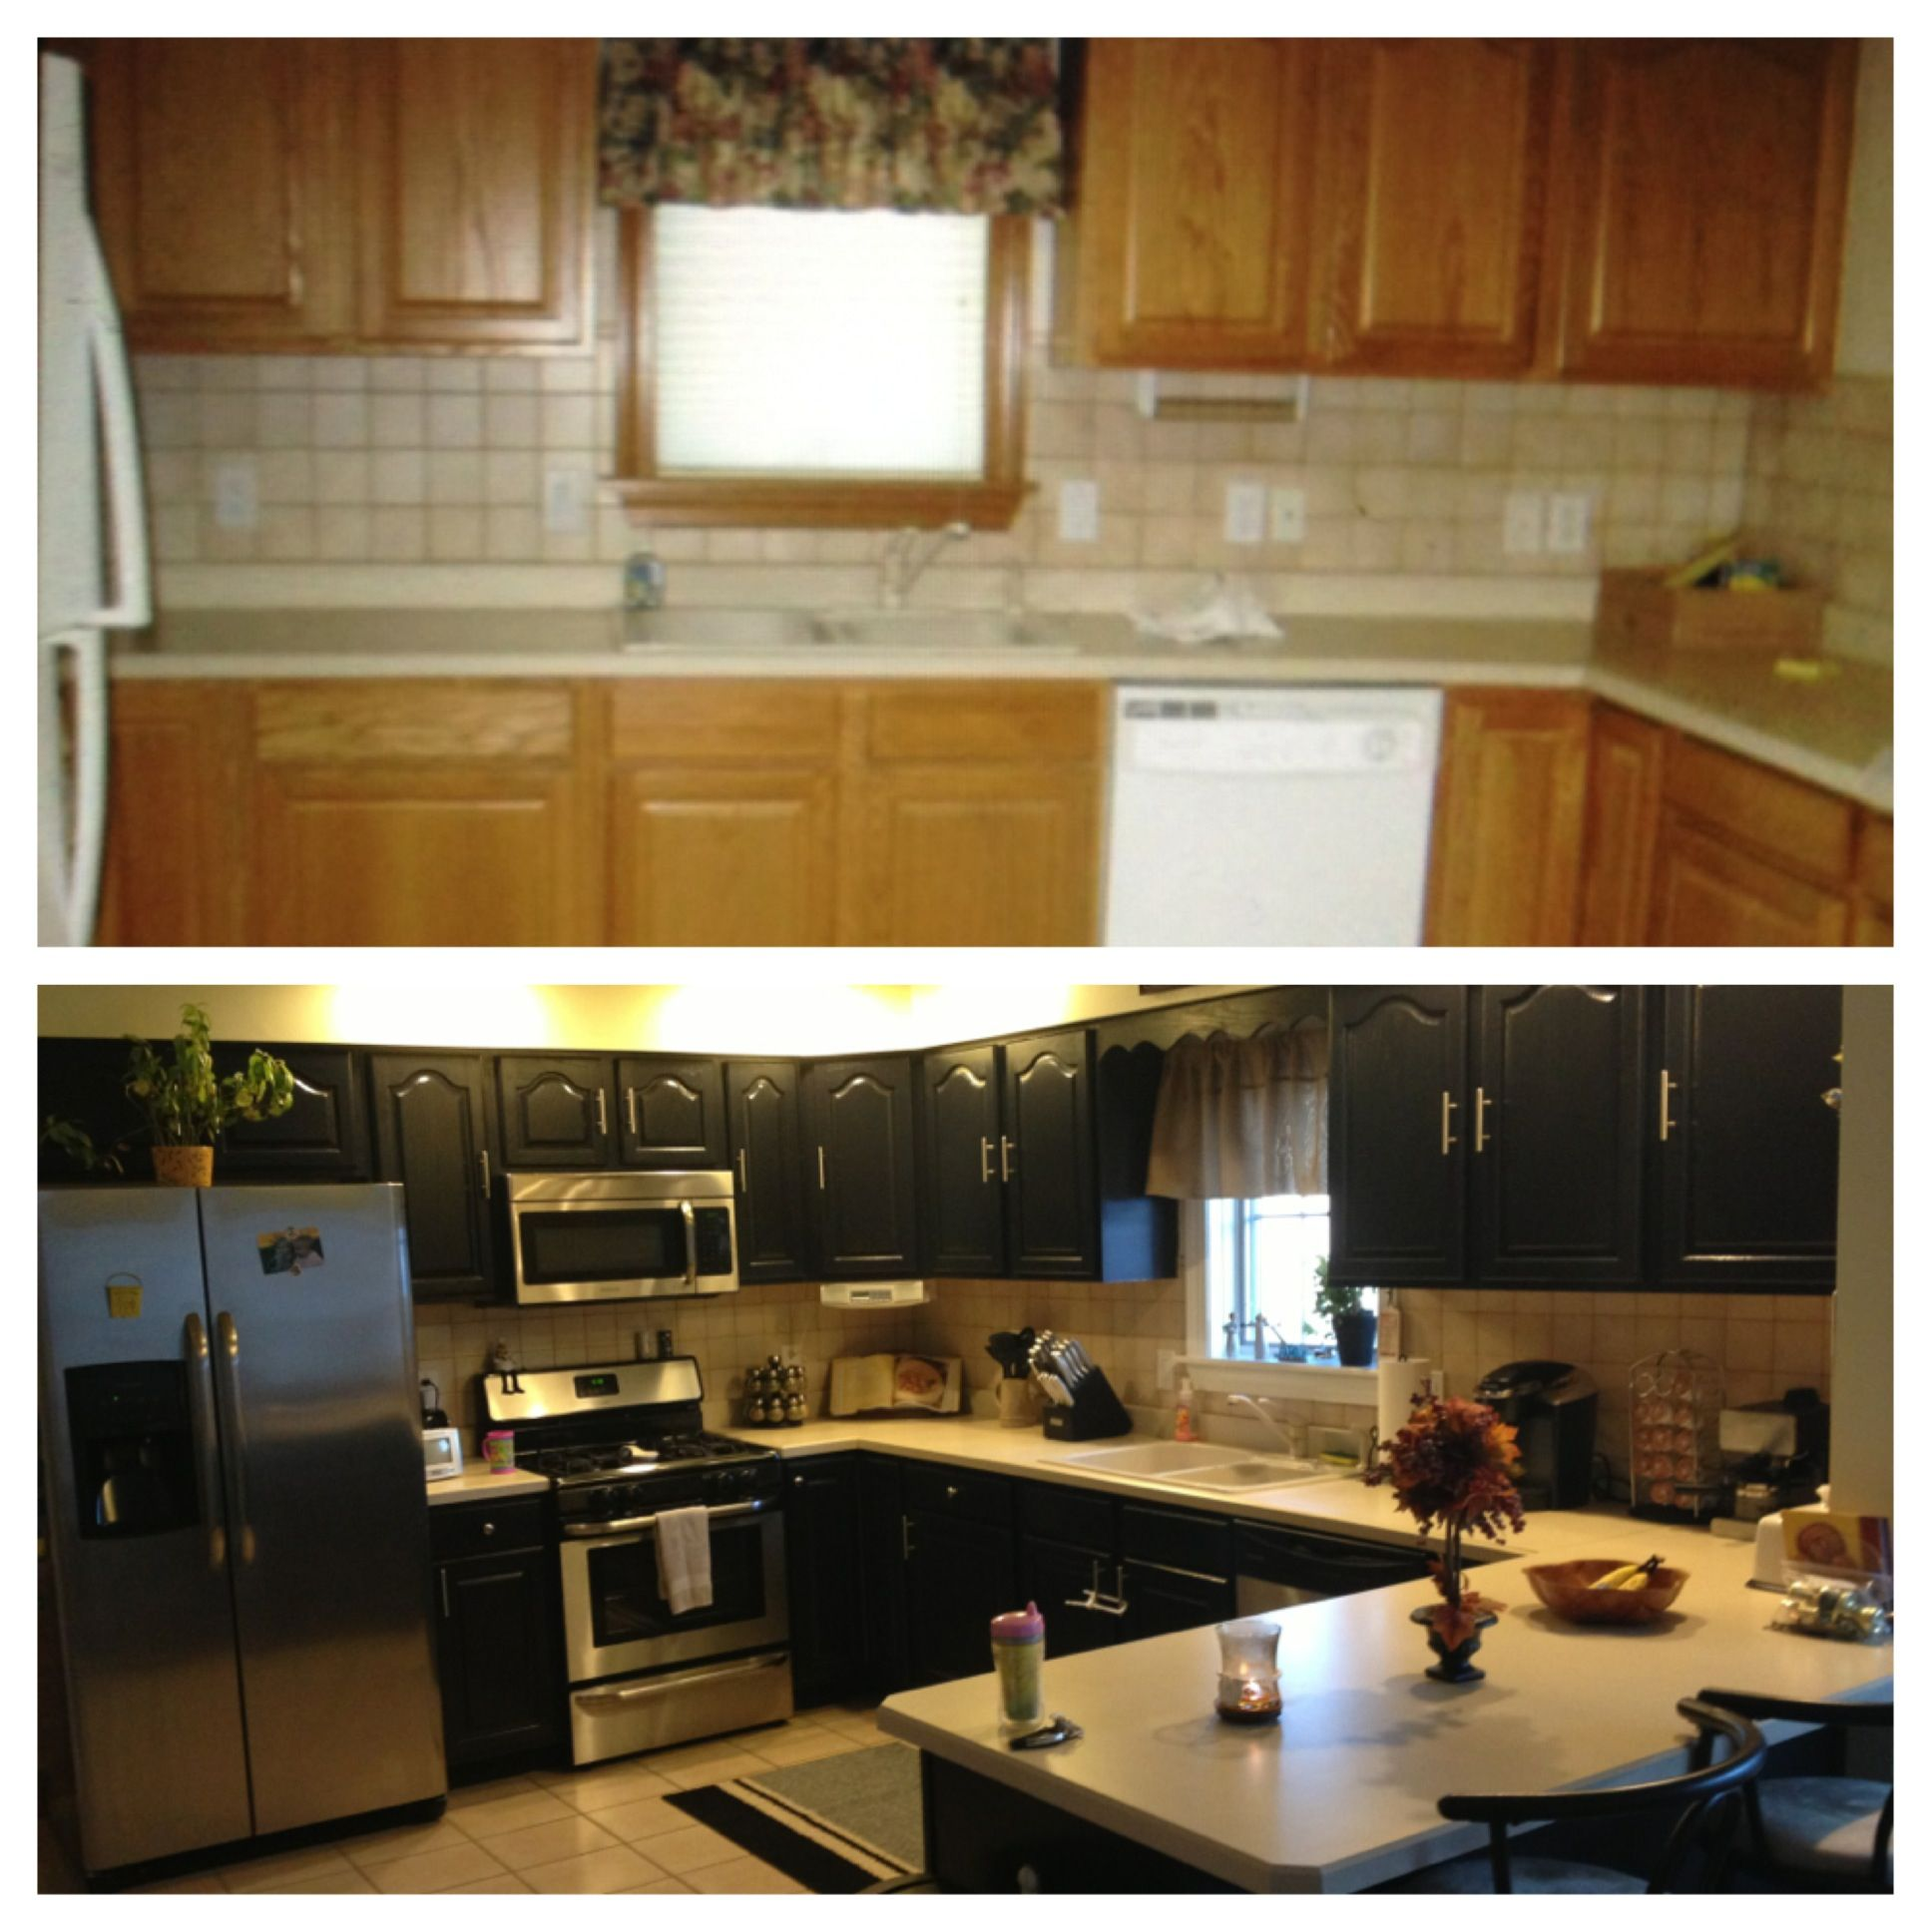 Oak Kitchen Cabinets Painted White: Painted Oak Cabinets To New Black By Valspar In Semi Gloss